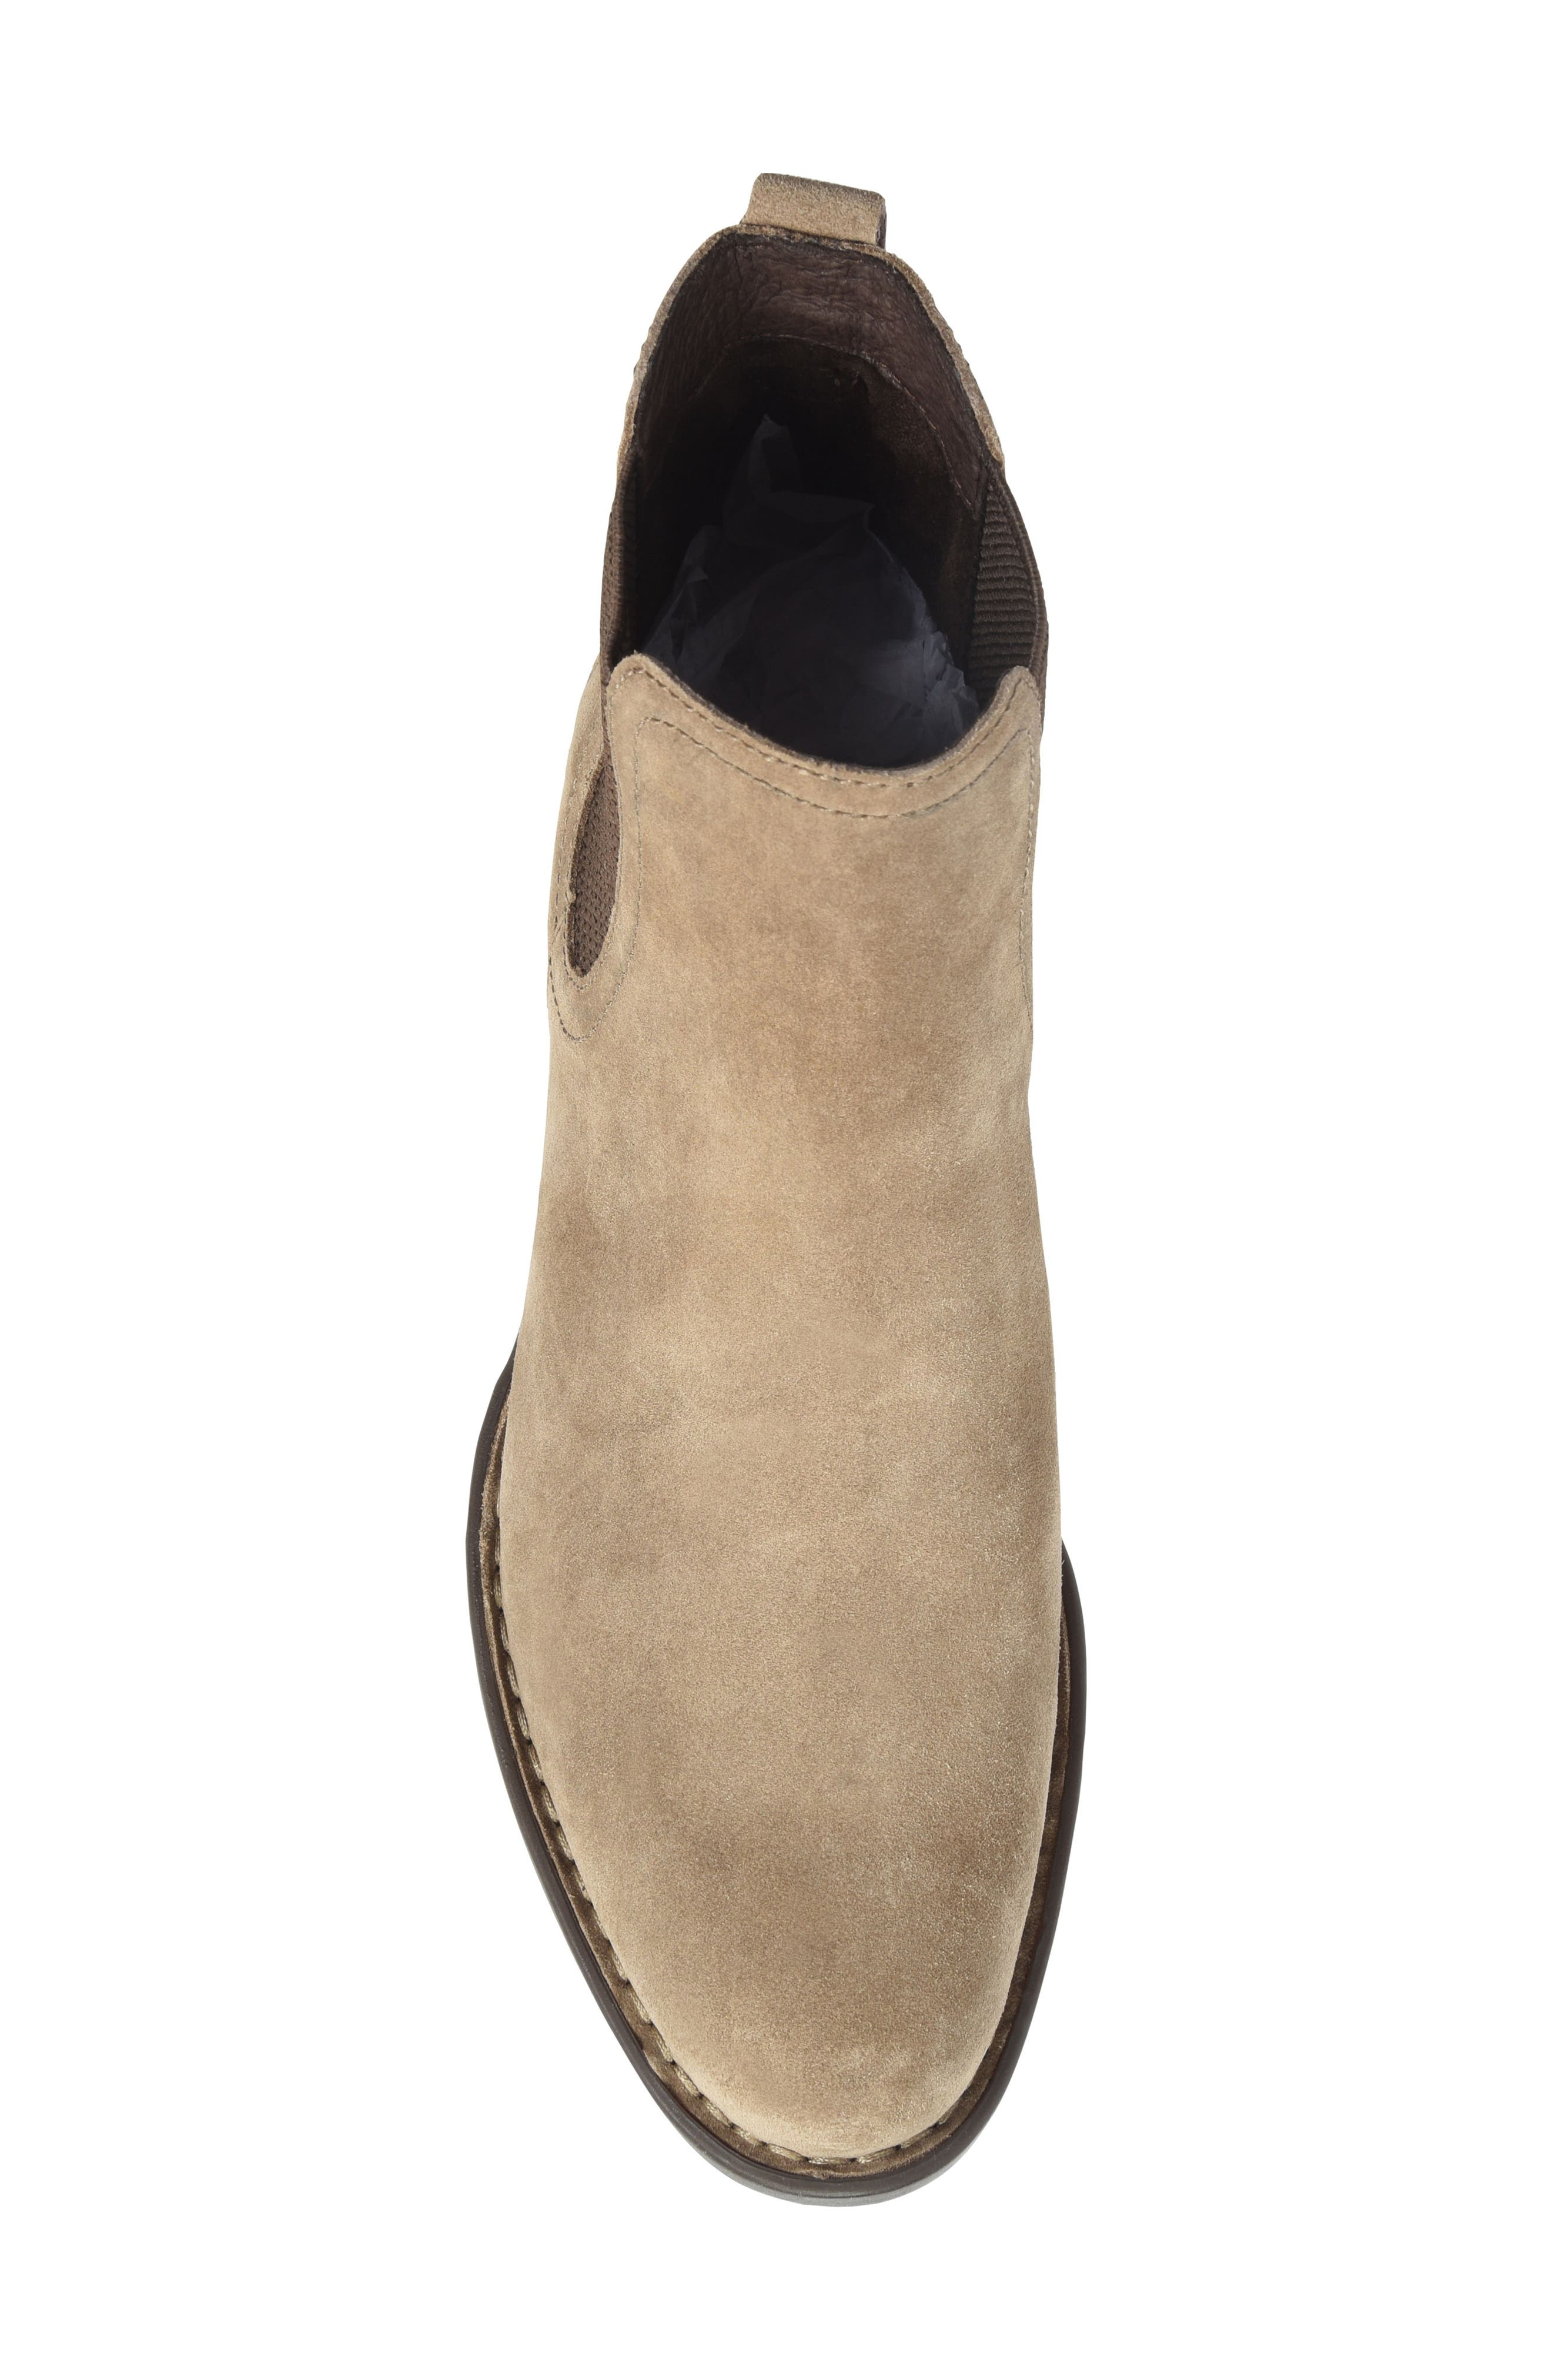 Casco Chelsea Boot,                             Alternate thumbnail 5, color,                             Taupe Suede